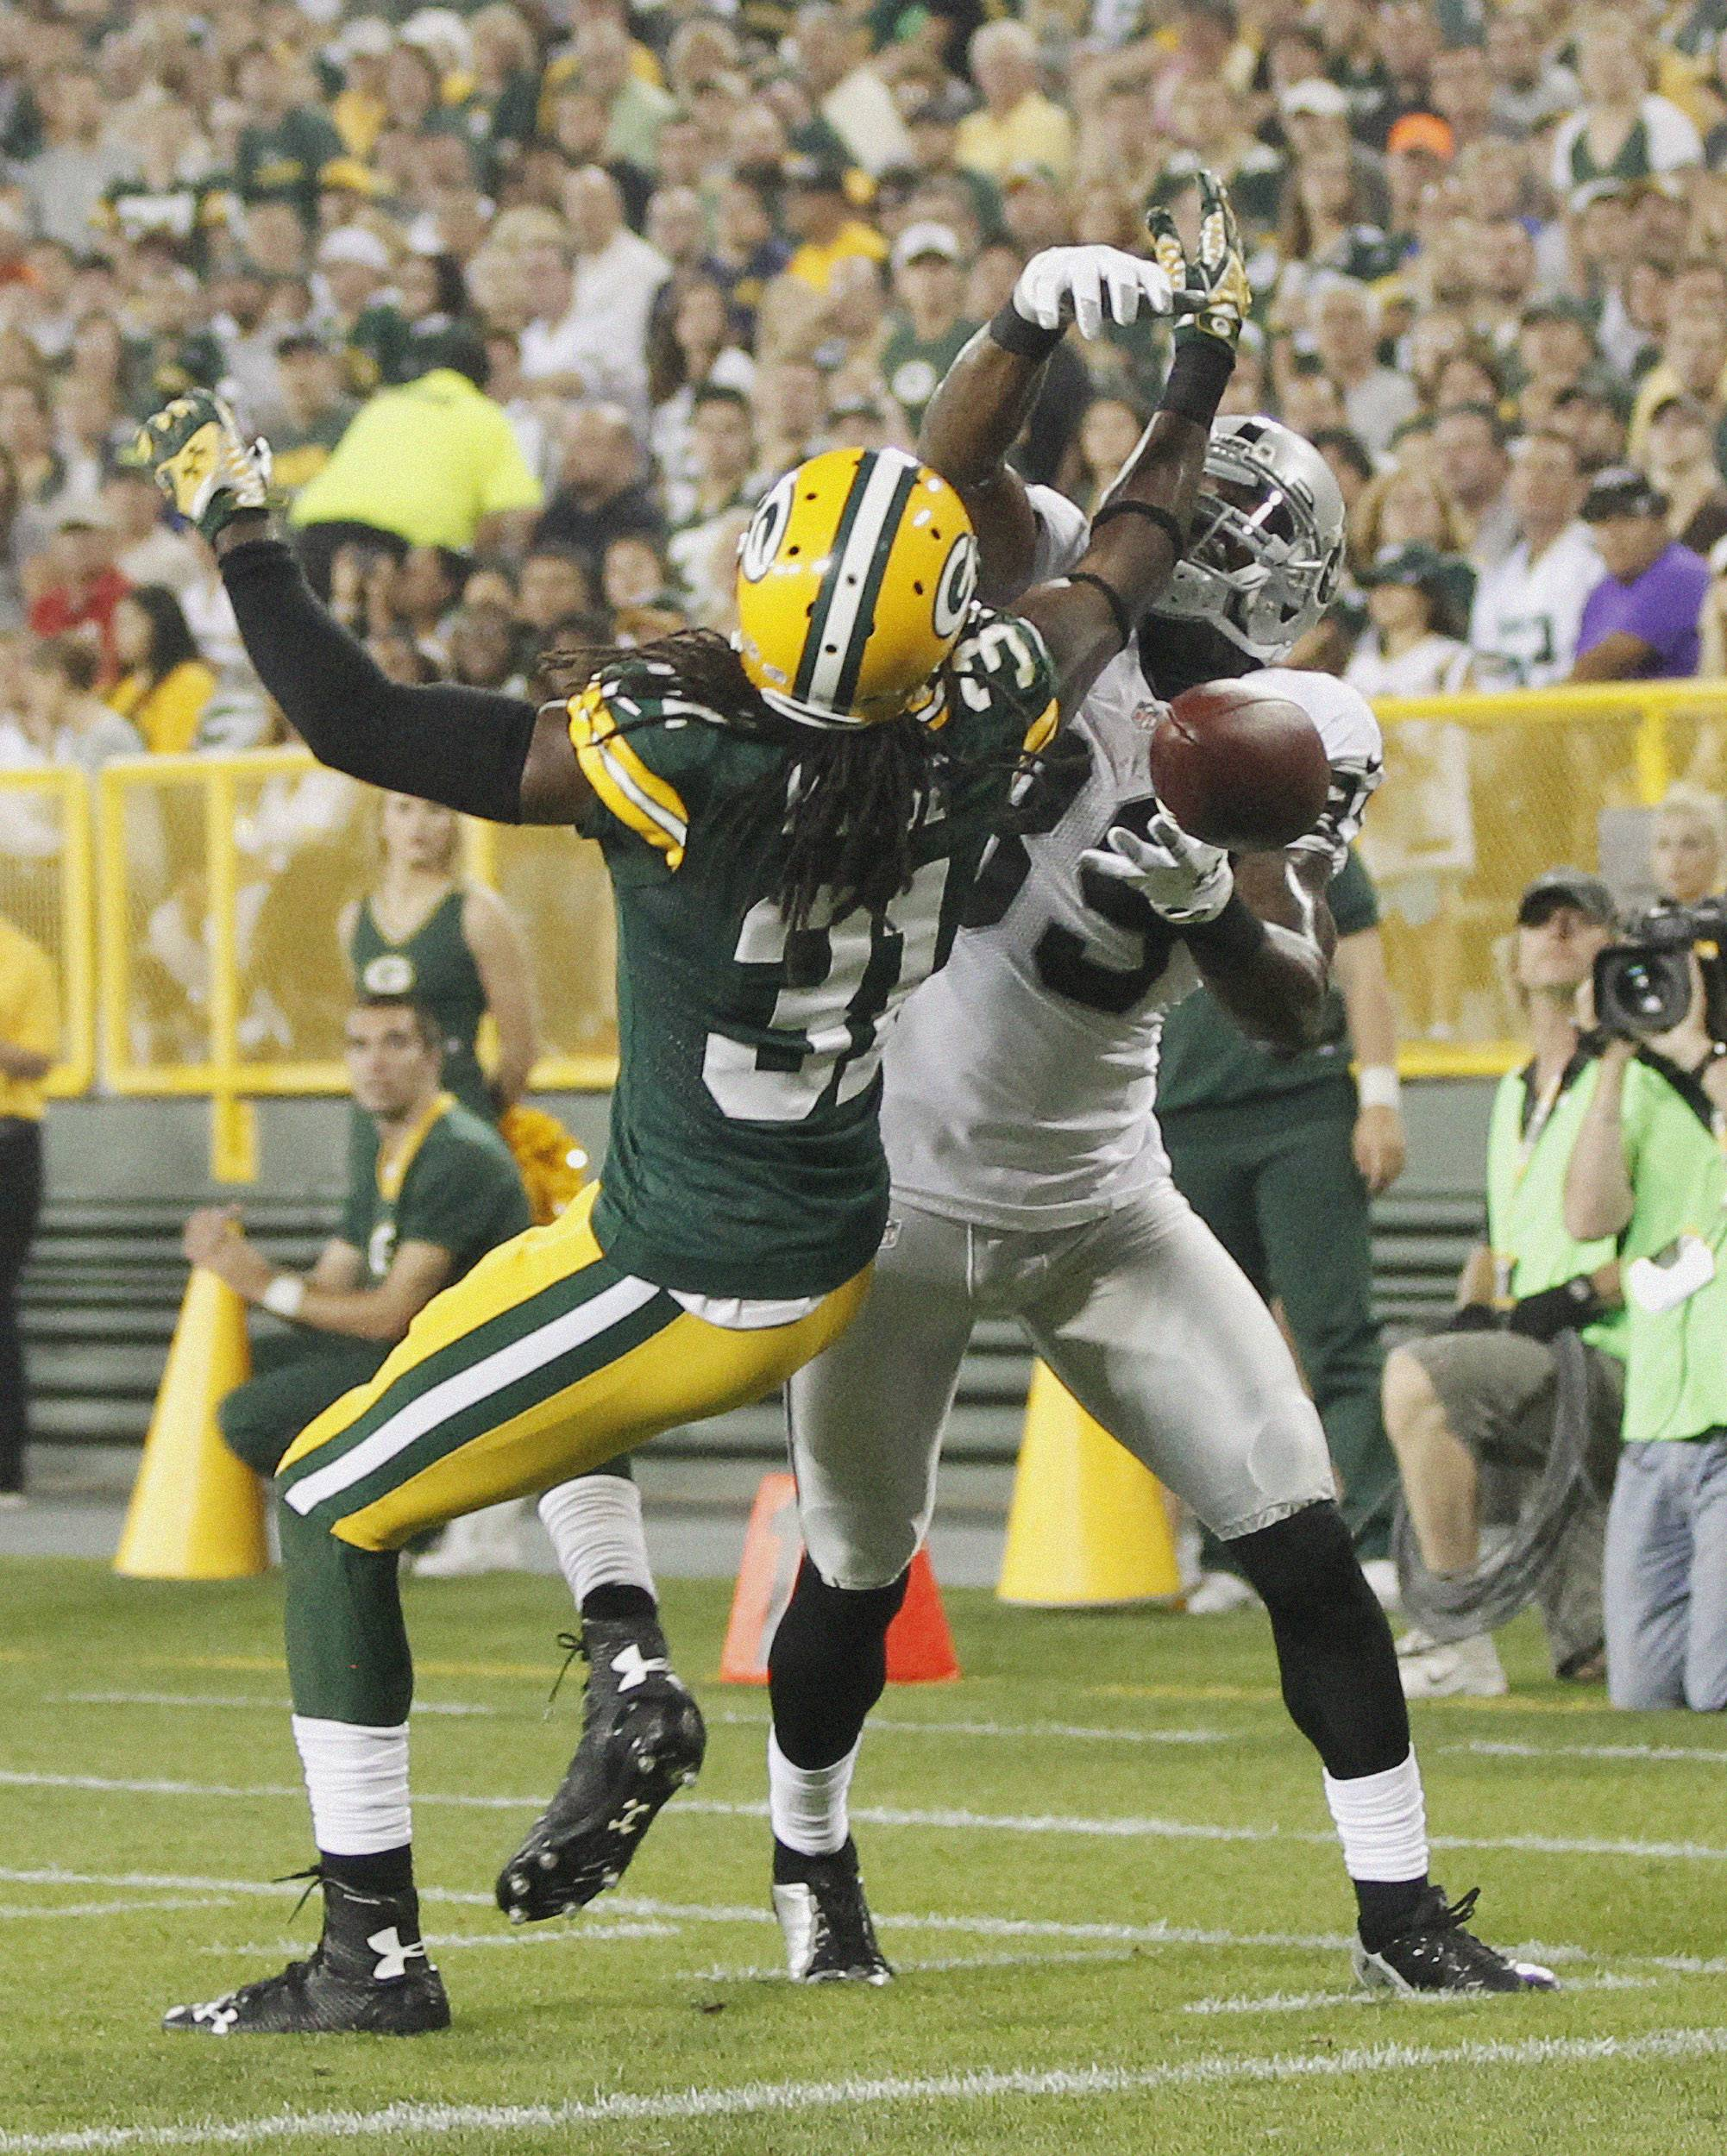 Green Bay Packers' Davon House breaks up a pass intended for Oakland Raiders' James Jones during the first half of an NFL preseason football game Friday, Aug. 22, 2014, in Green Bay, Wis.